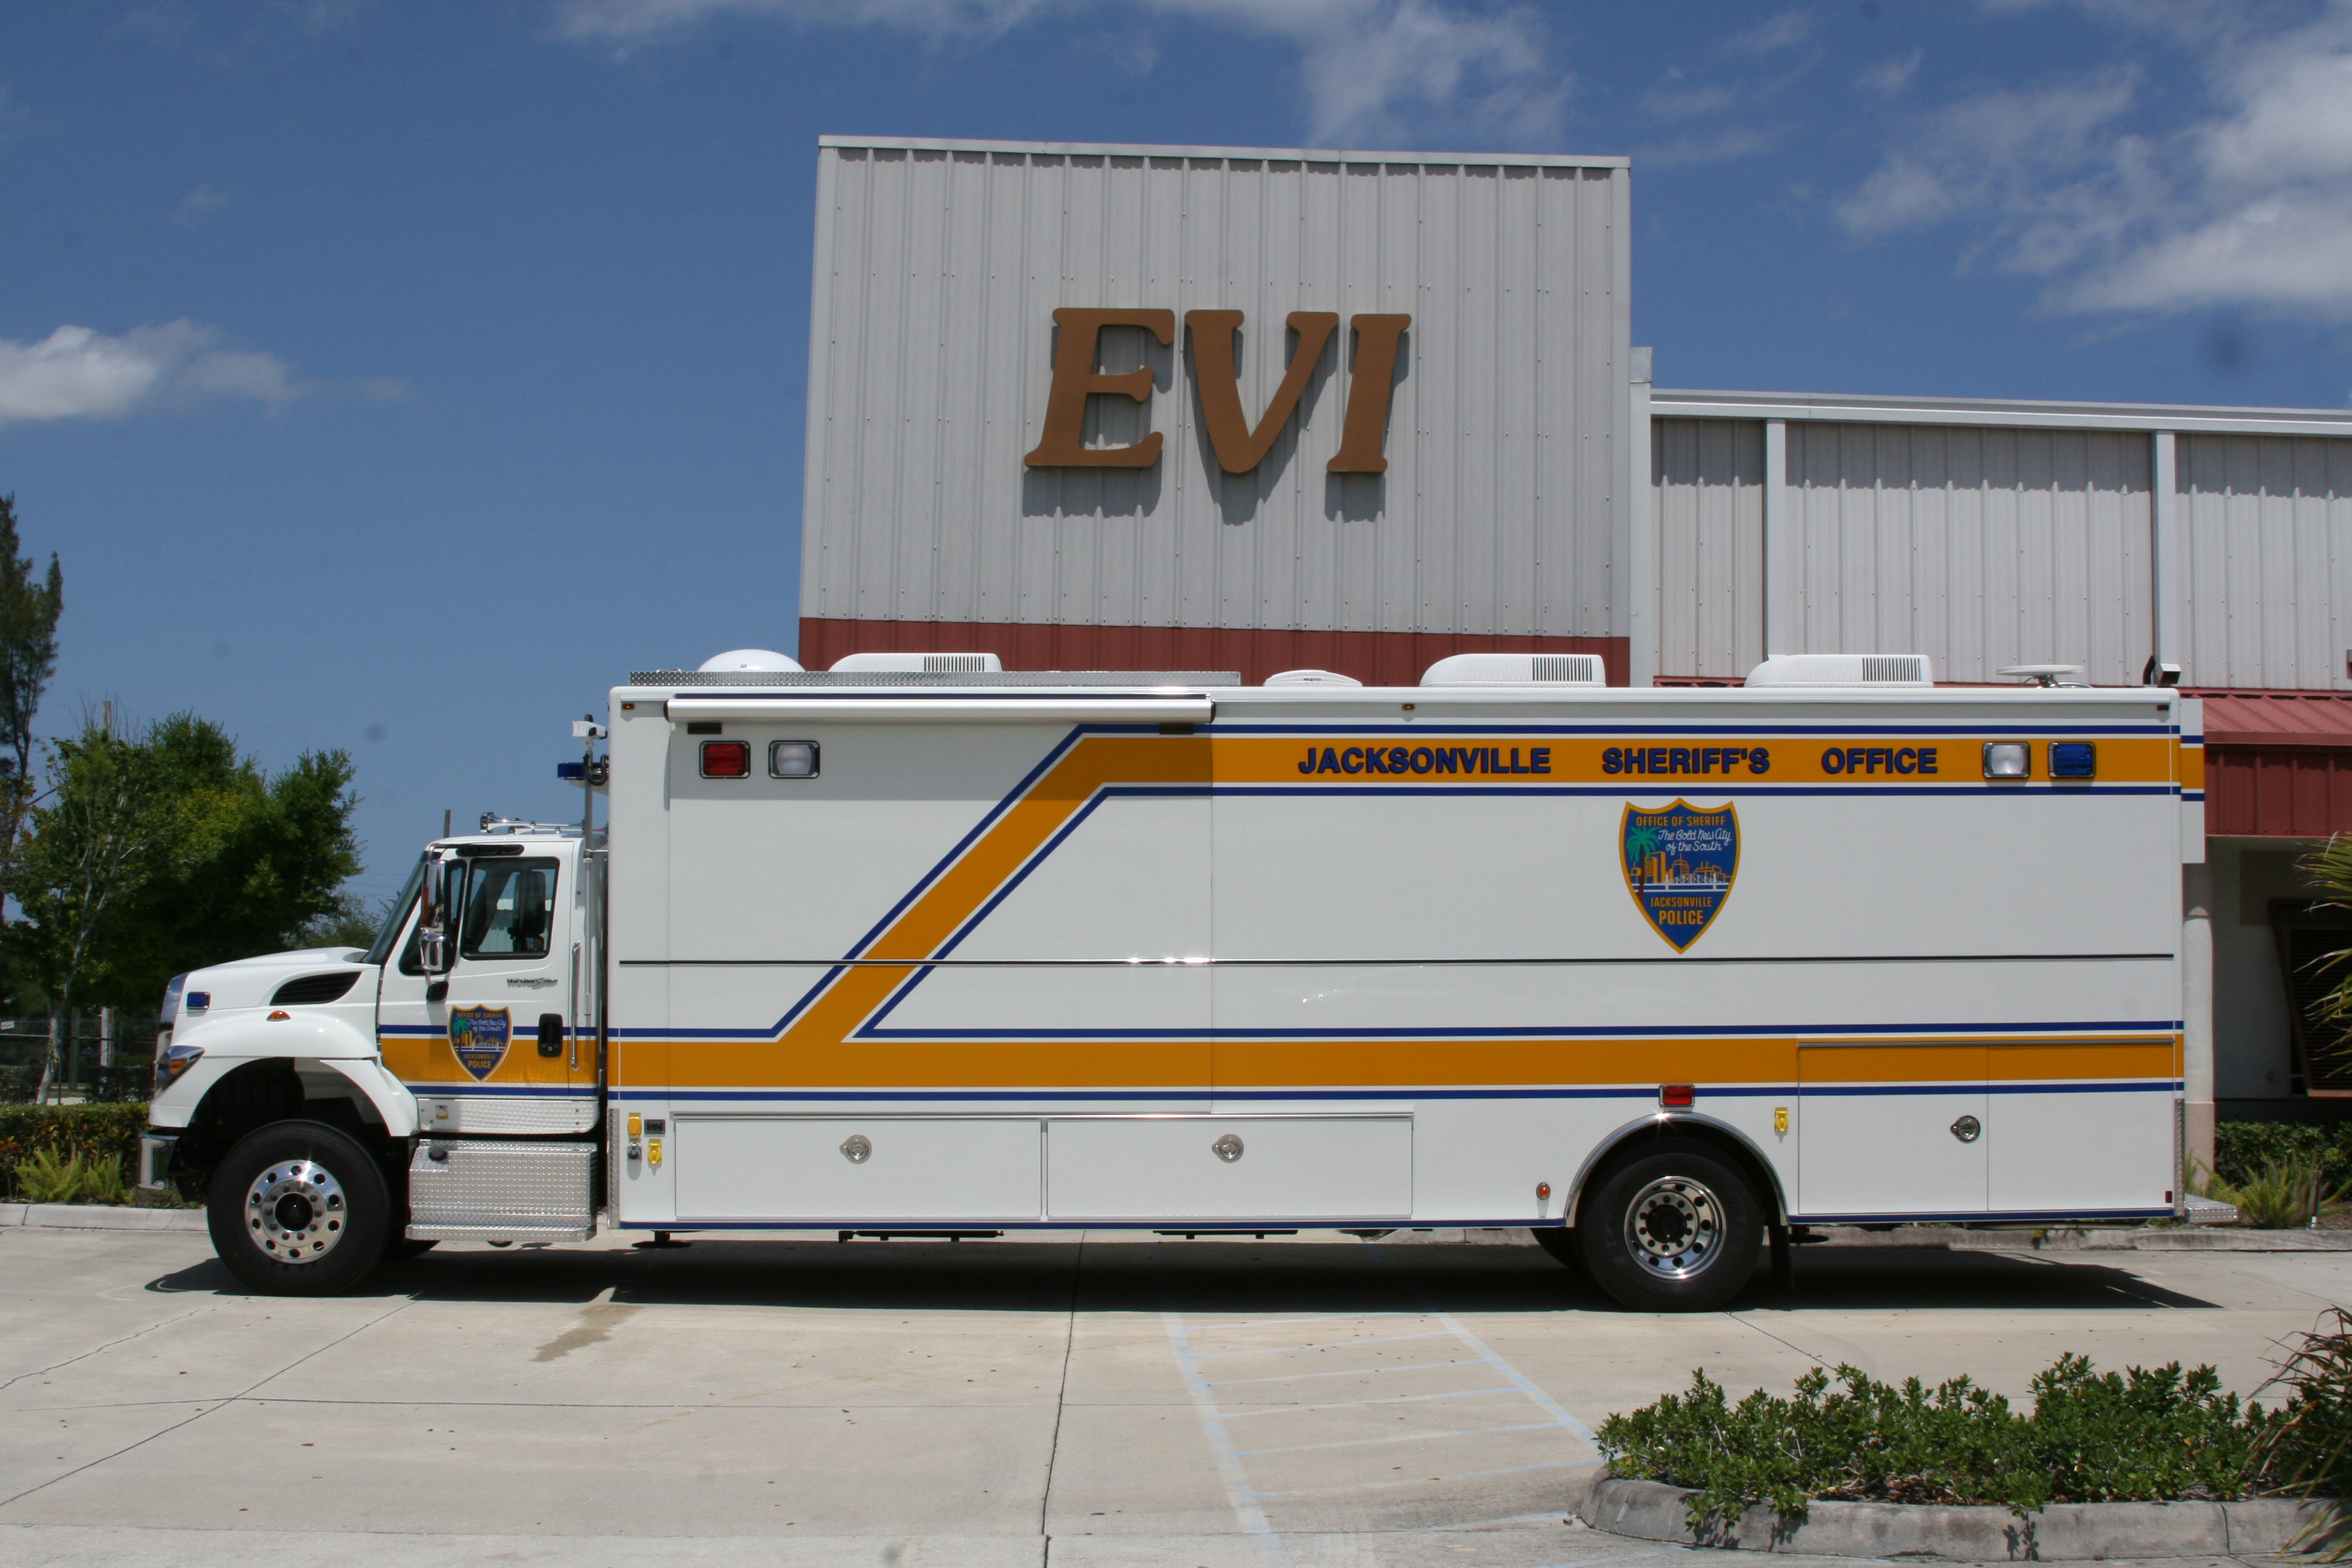 30-Ft. Mobile Command Vehicle